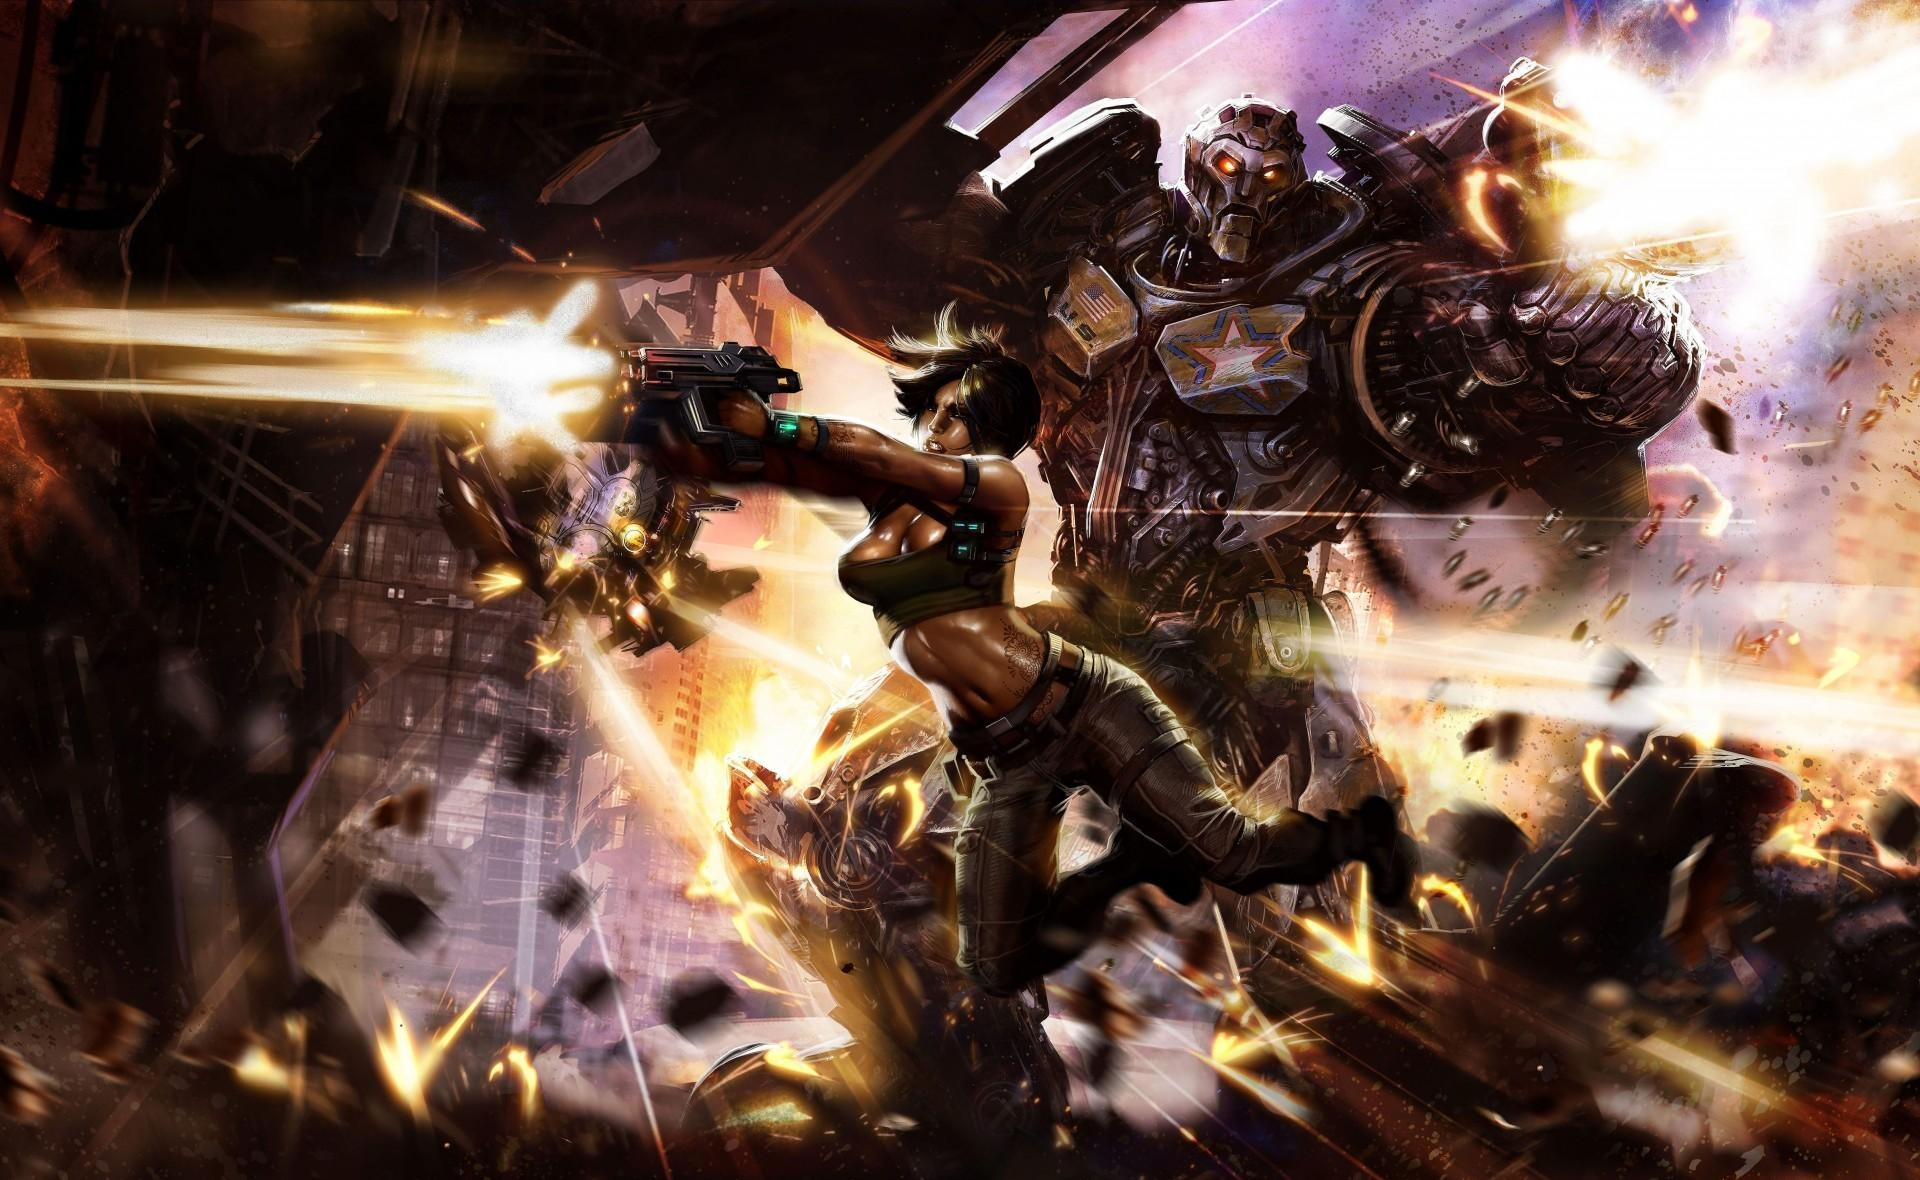 86403 Screensavers and Wallpapers Robot for phone. Download Fantasy, Weapon, Girl, Robot, Shooting, Cyborg, Destruction pictures for free